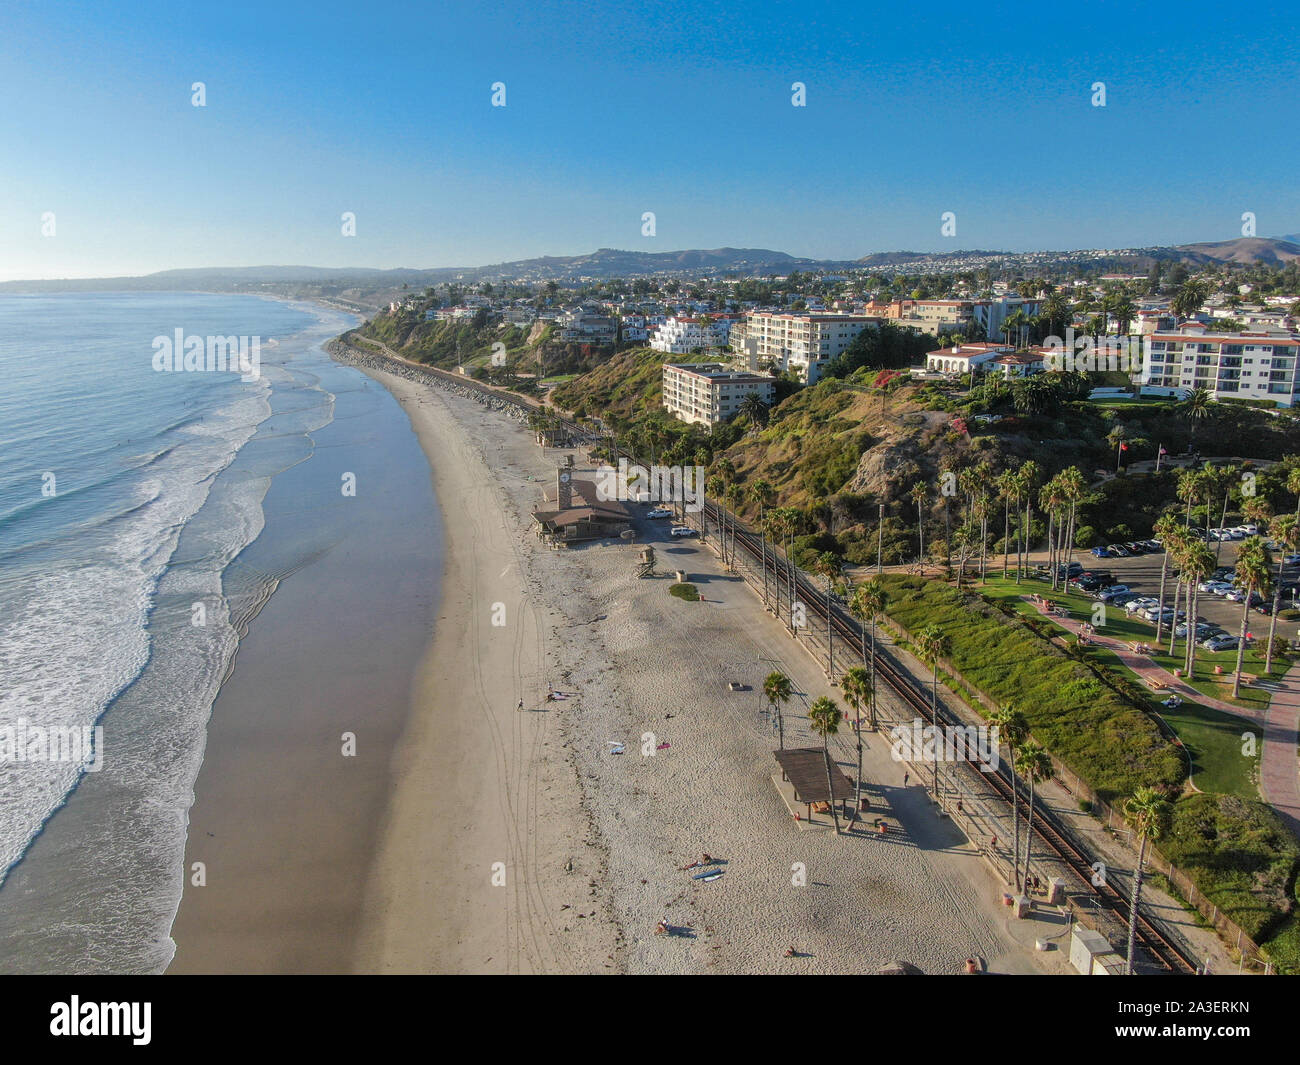 Aerial view of San Clemente coastline town and beach, Orange County, California, USA. Travel destination South West Coast. Famous beach for surfer. Stock Photo